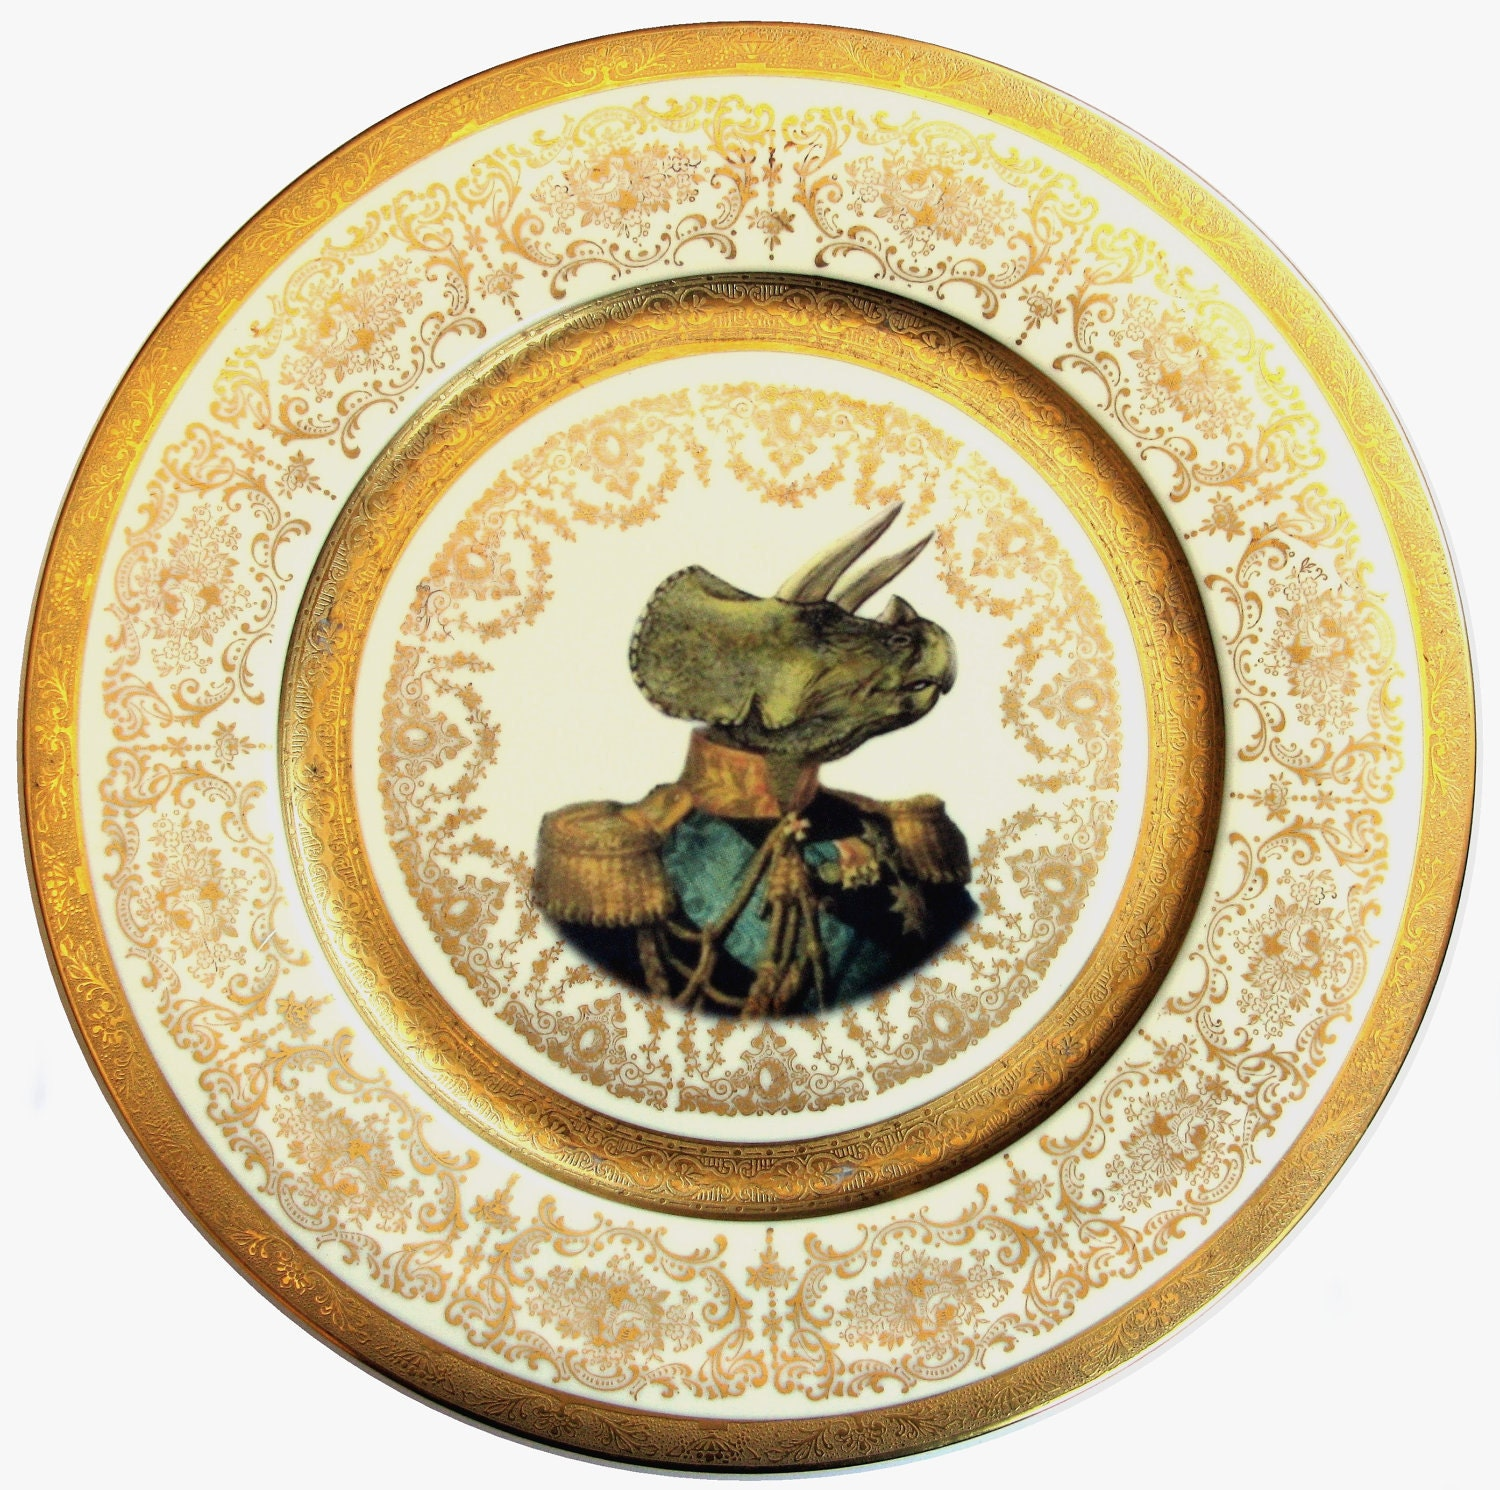 Admiral Triceratops Portrait Plate - Altered Antique Plate - BeatUpCreations